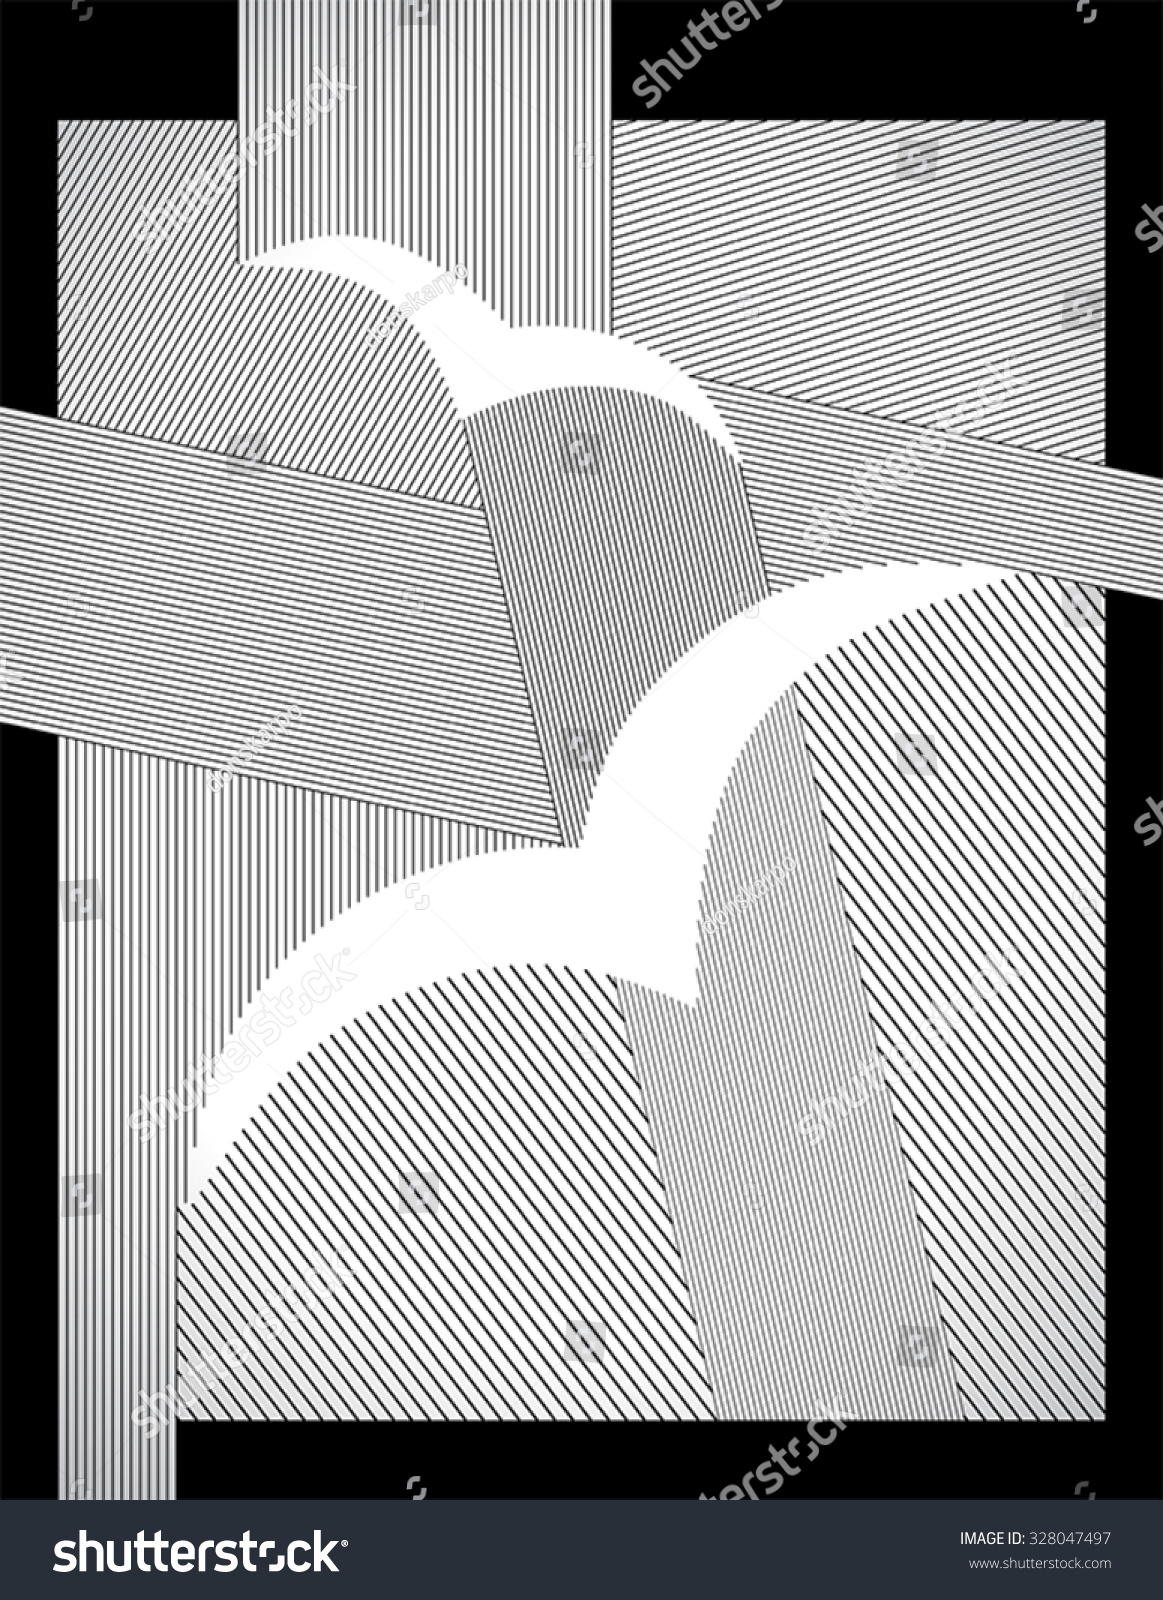 Vector Drawing Straight Lines : Birds abstract drawing with straight lines and frame